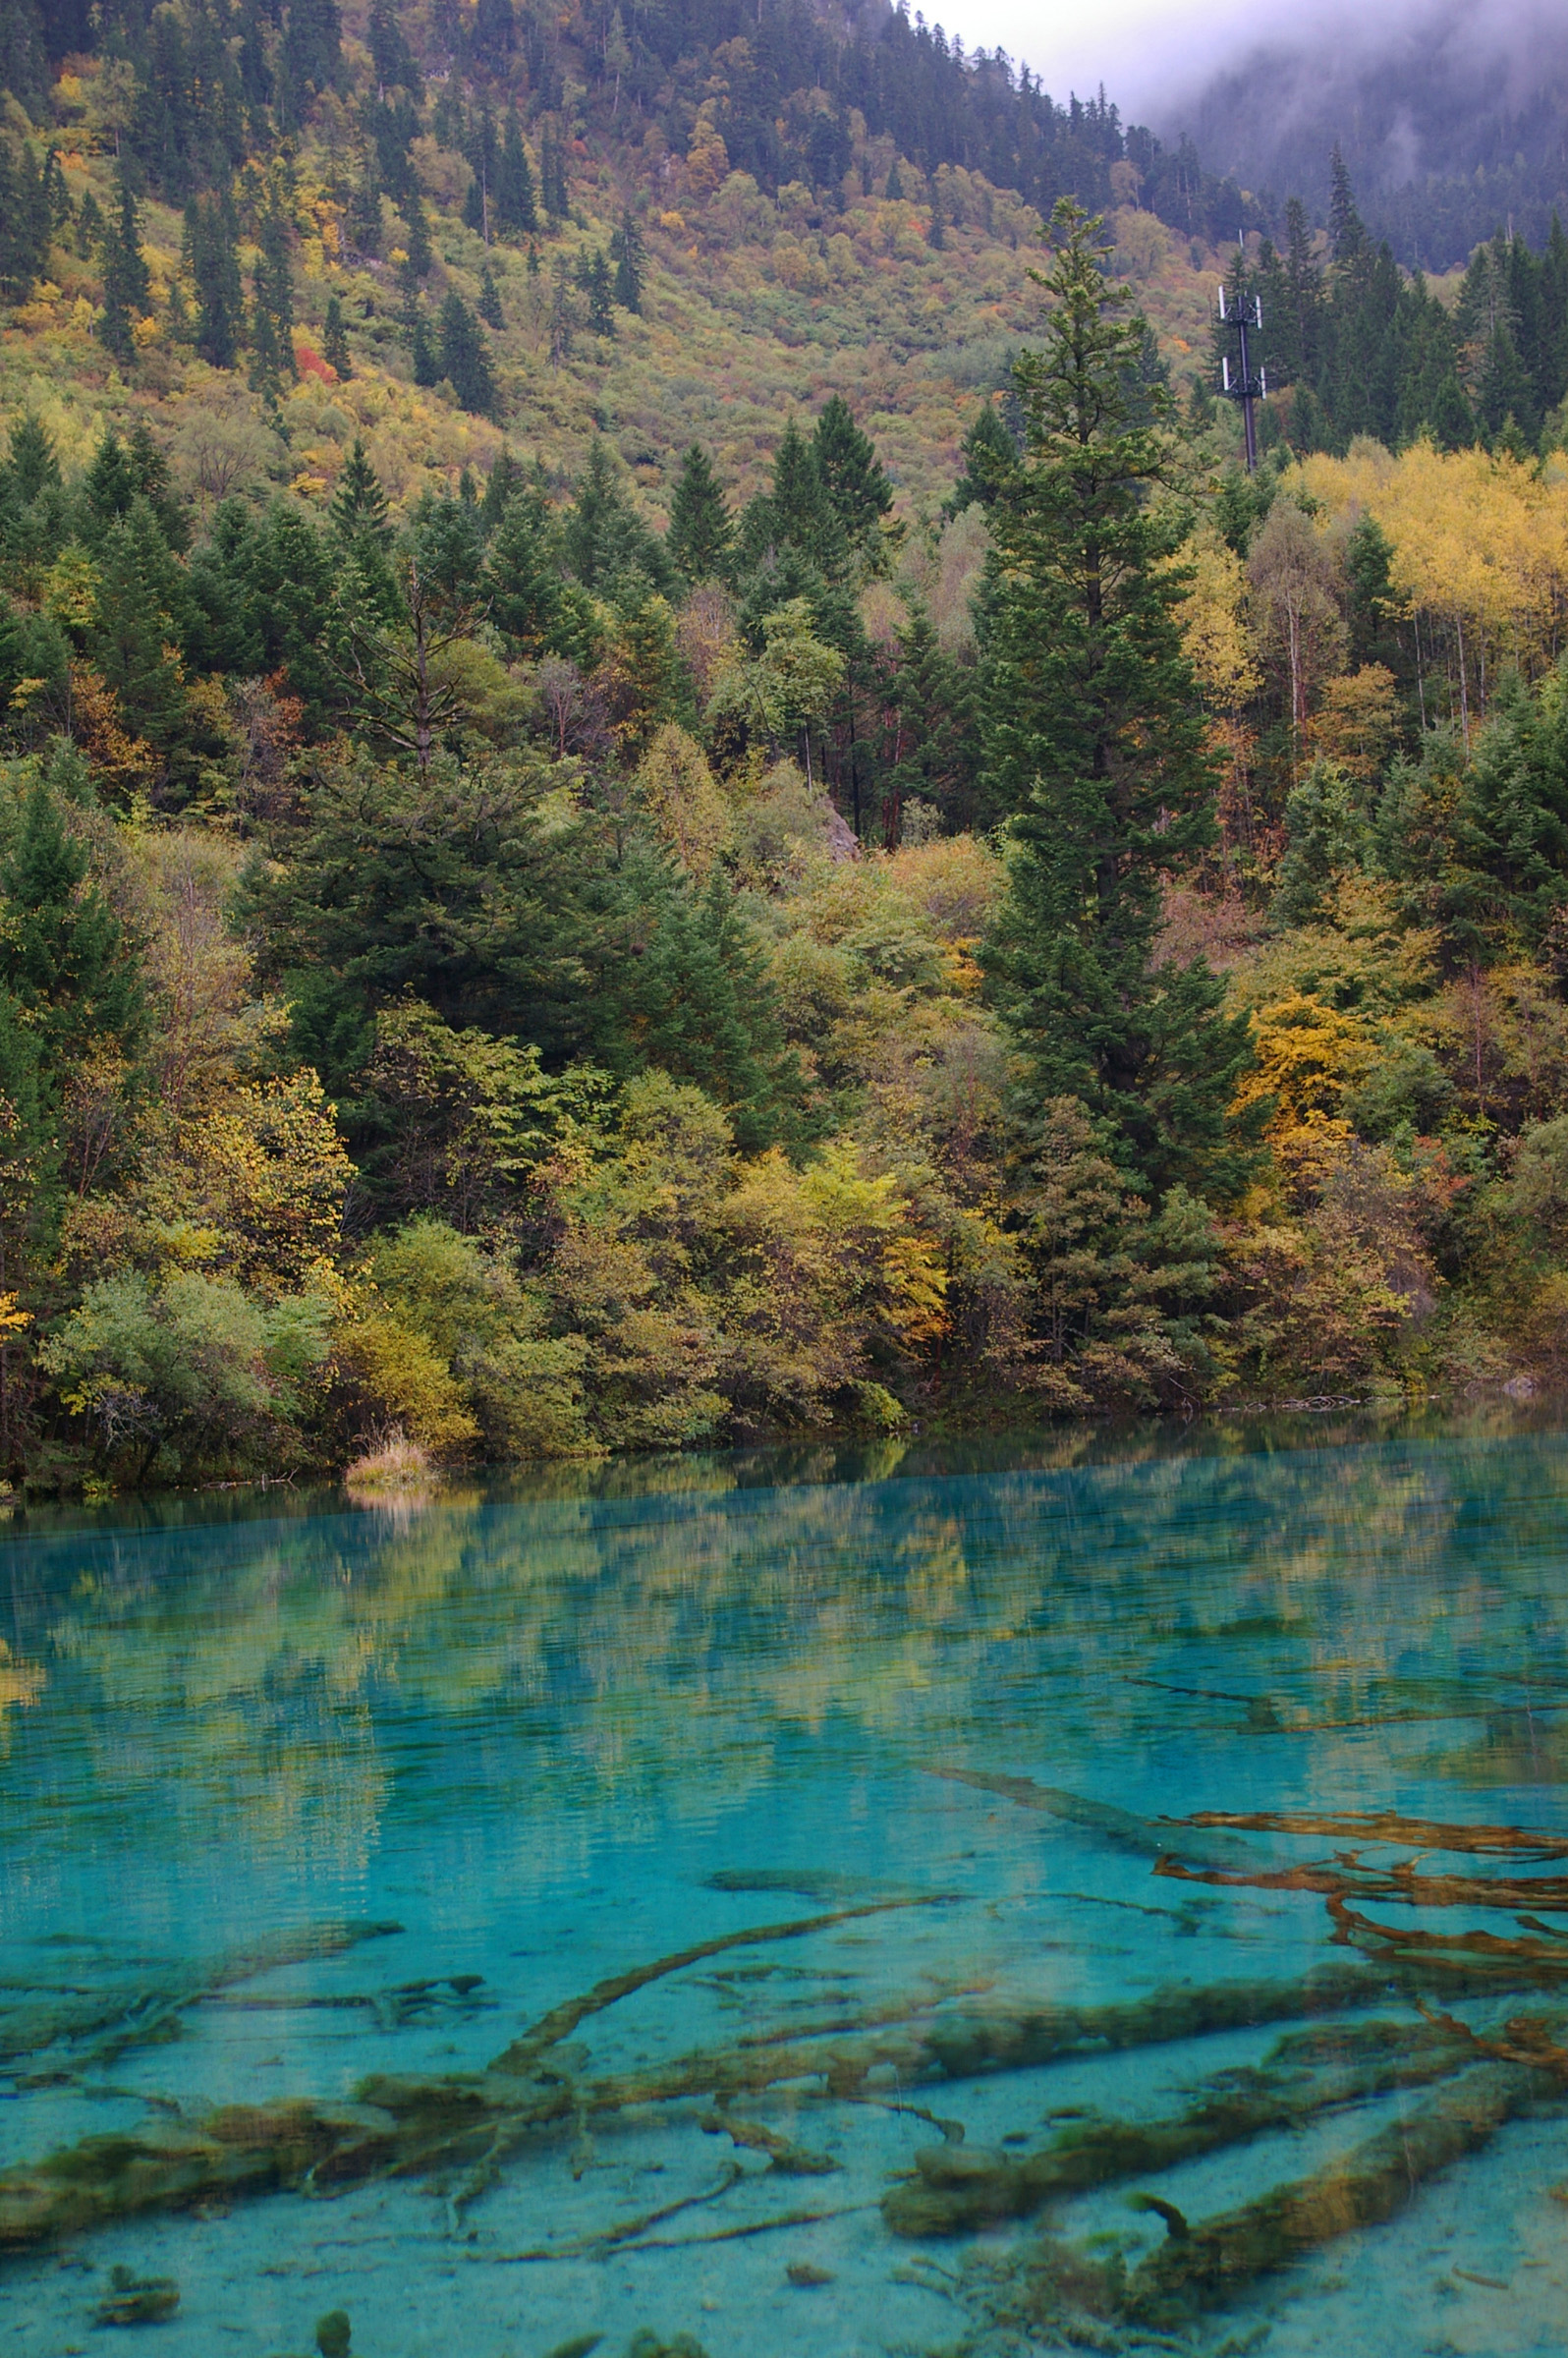 Cyan blue lake with crystal clear water and submerged branches surrounded by trees and forested mountain slopes in China